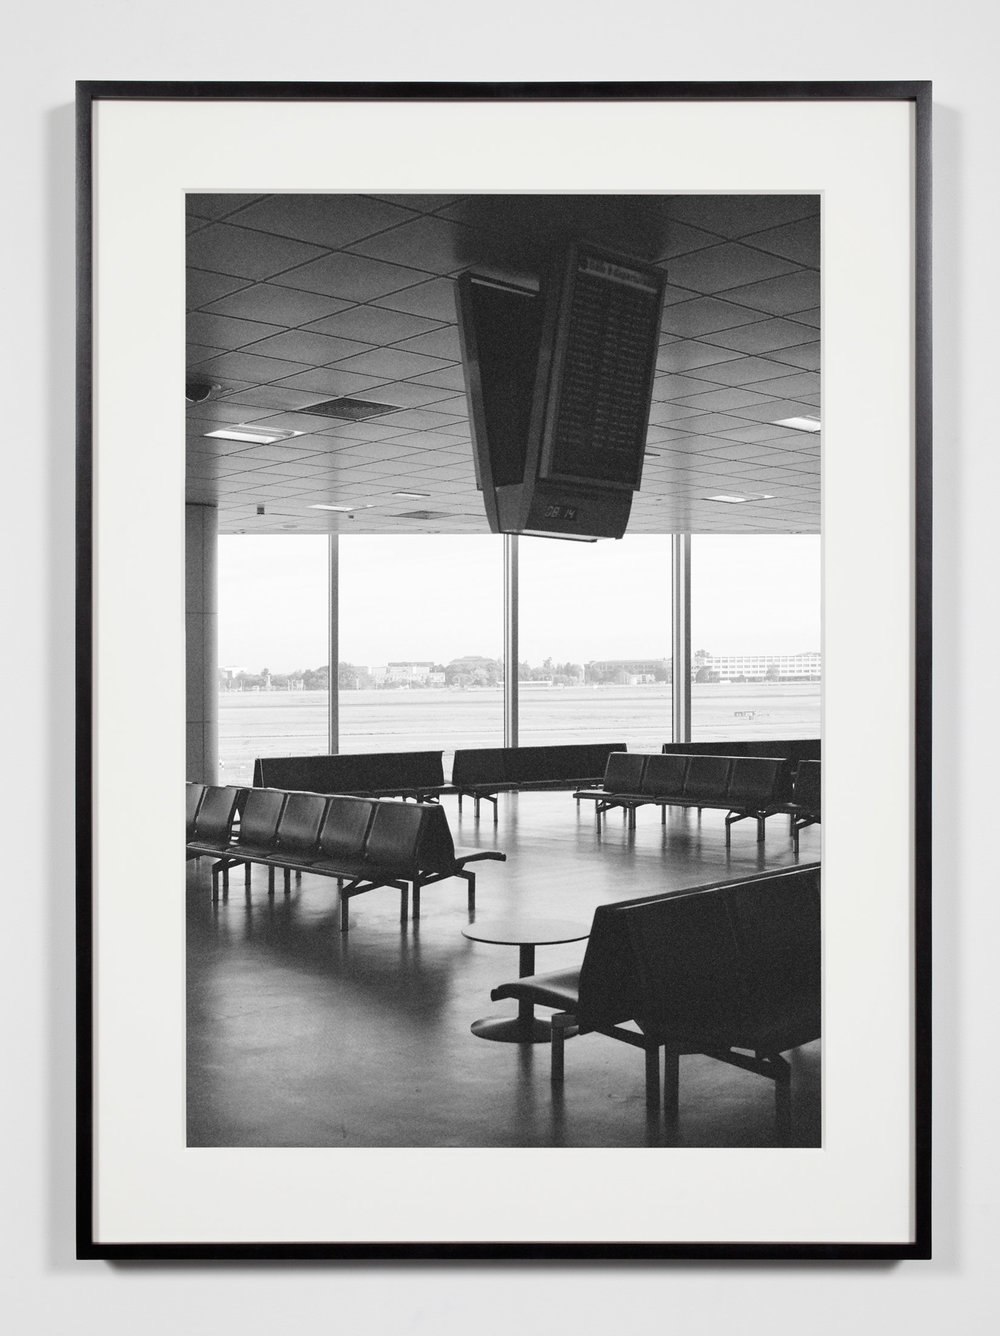 Airport Lounge, Belfast, Ireland, September 10, 2010   2011  Epson Ultrachrome K3 archival ink jet print on Hahnemühle Photo Rag paper  36 3/8 x 26 3/8 inches   Industrial Portraits, 2008–    A Diagram of Forces, 2011